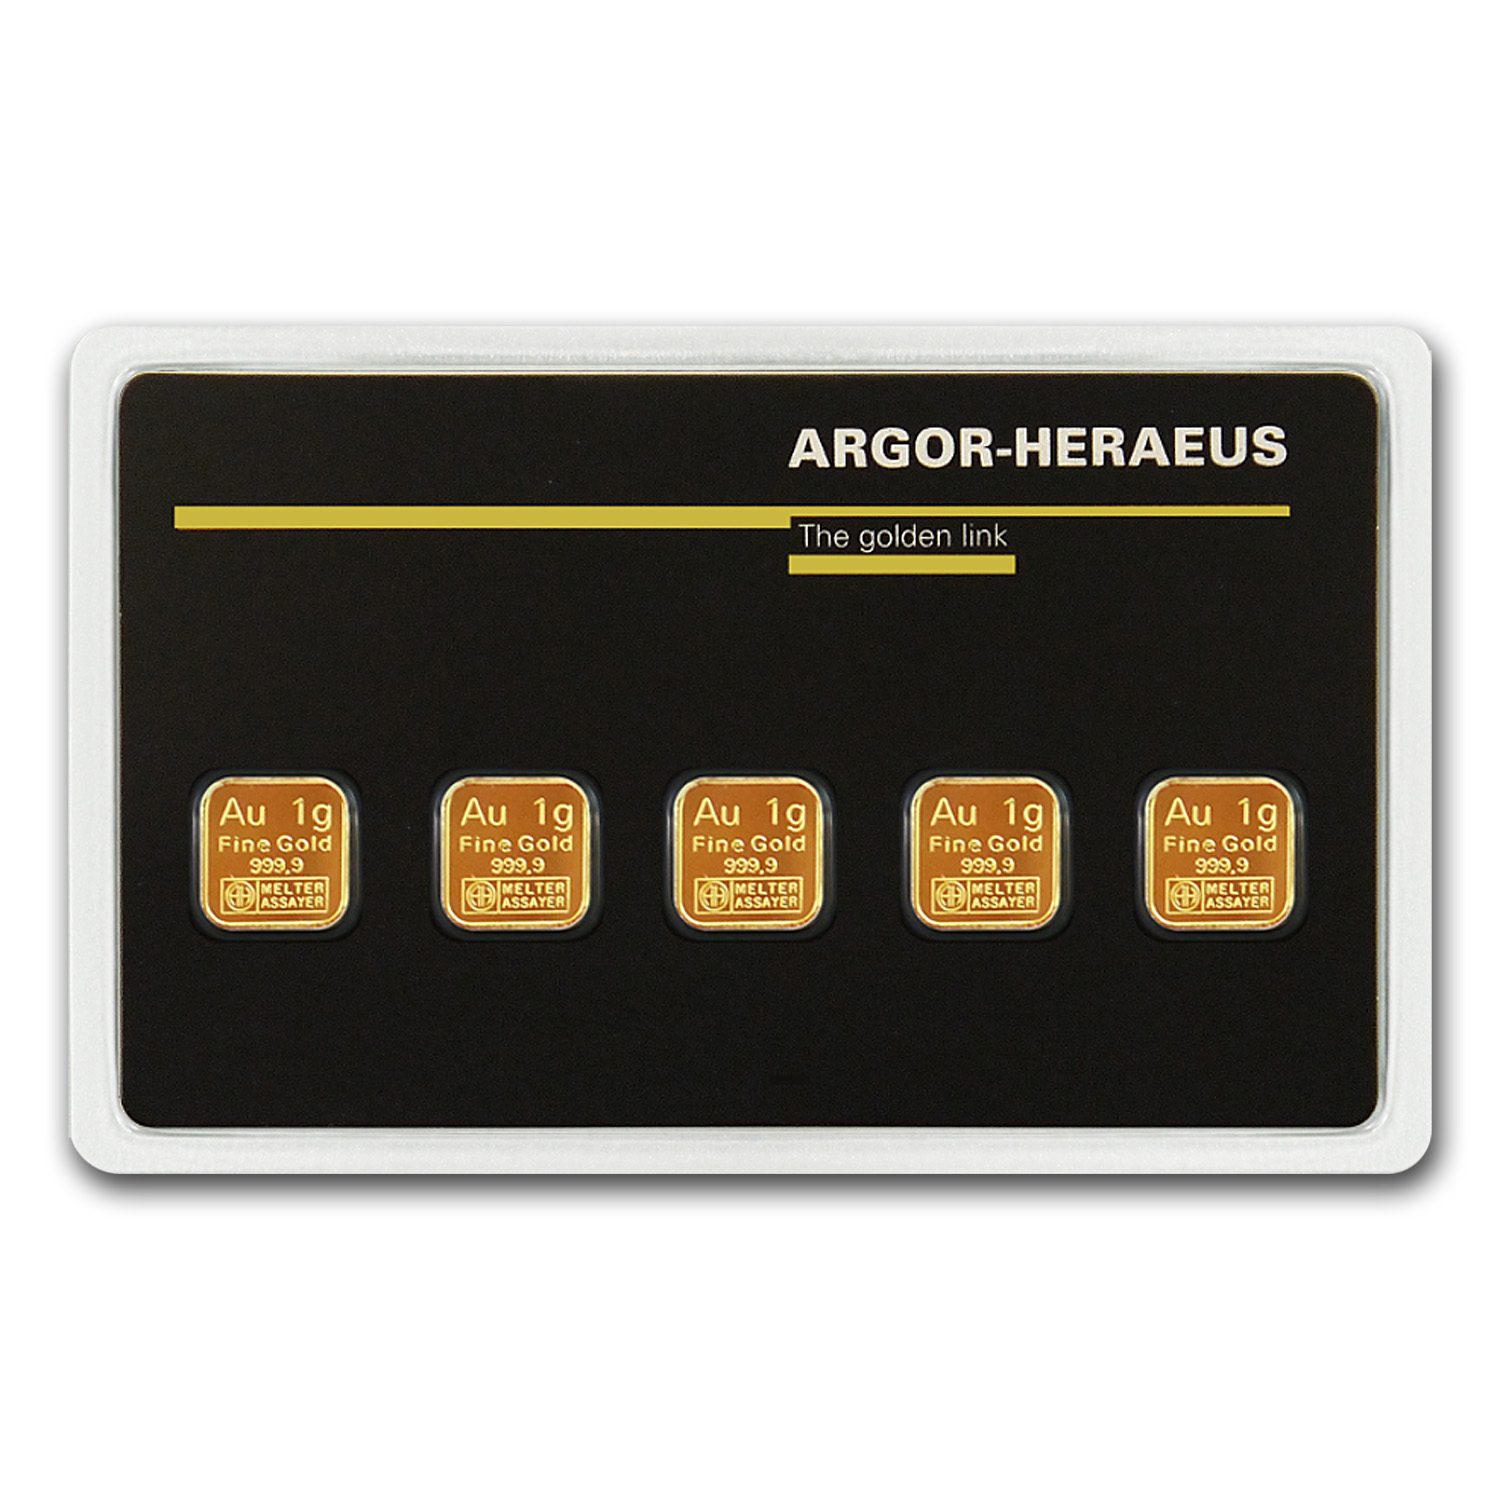 5x 1 gram Gold Bars - Argor-Heraeus (In Assay)